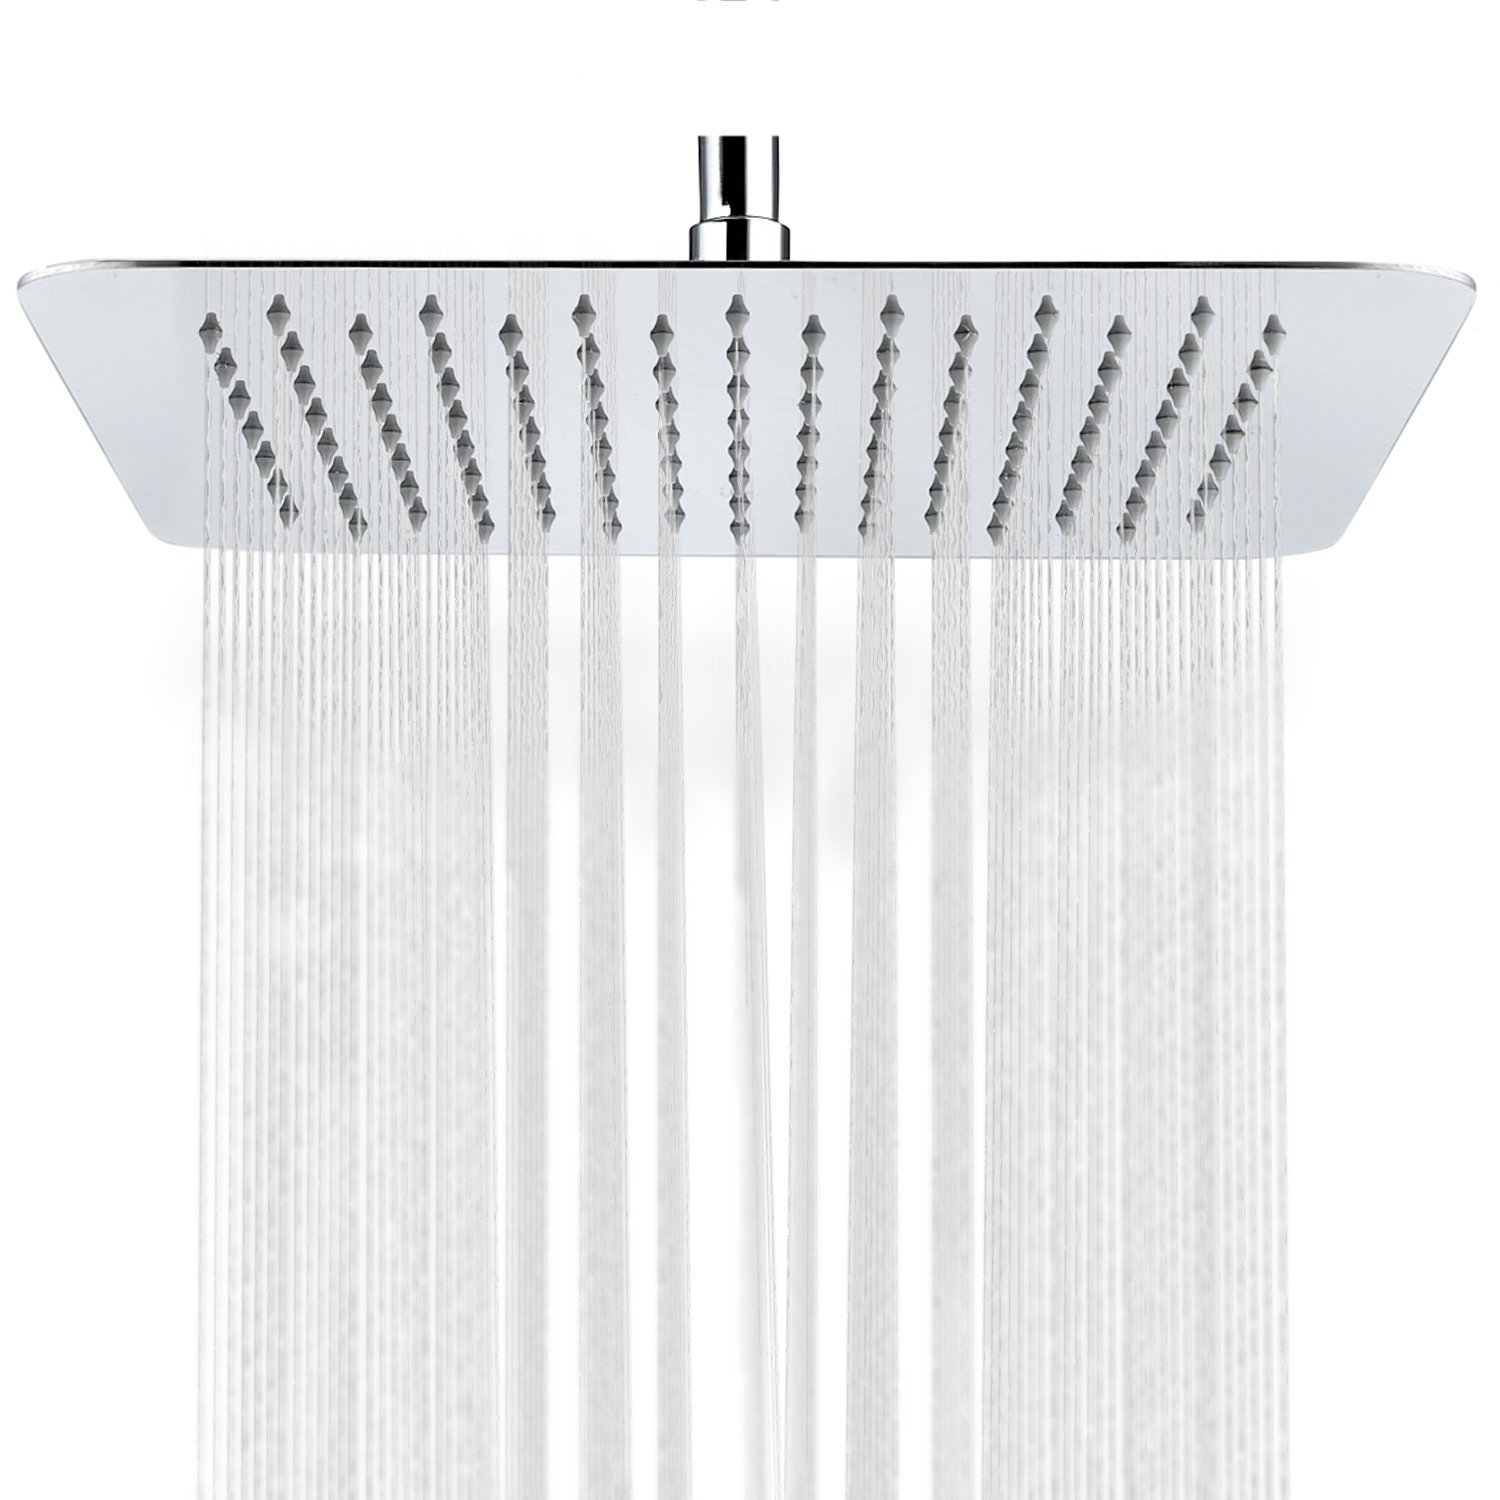 SR SUN RISE SRSH-F5043 Bathroom Luxury Rain Mixer Shower Combo Set Wall Mounted Rainfall Shower Head System Polished Chrome Finish(only for a new remodel)